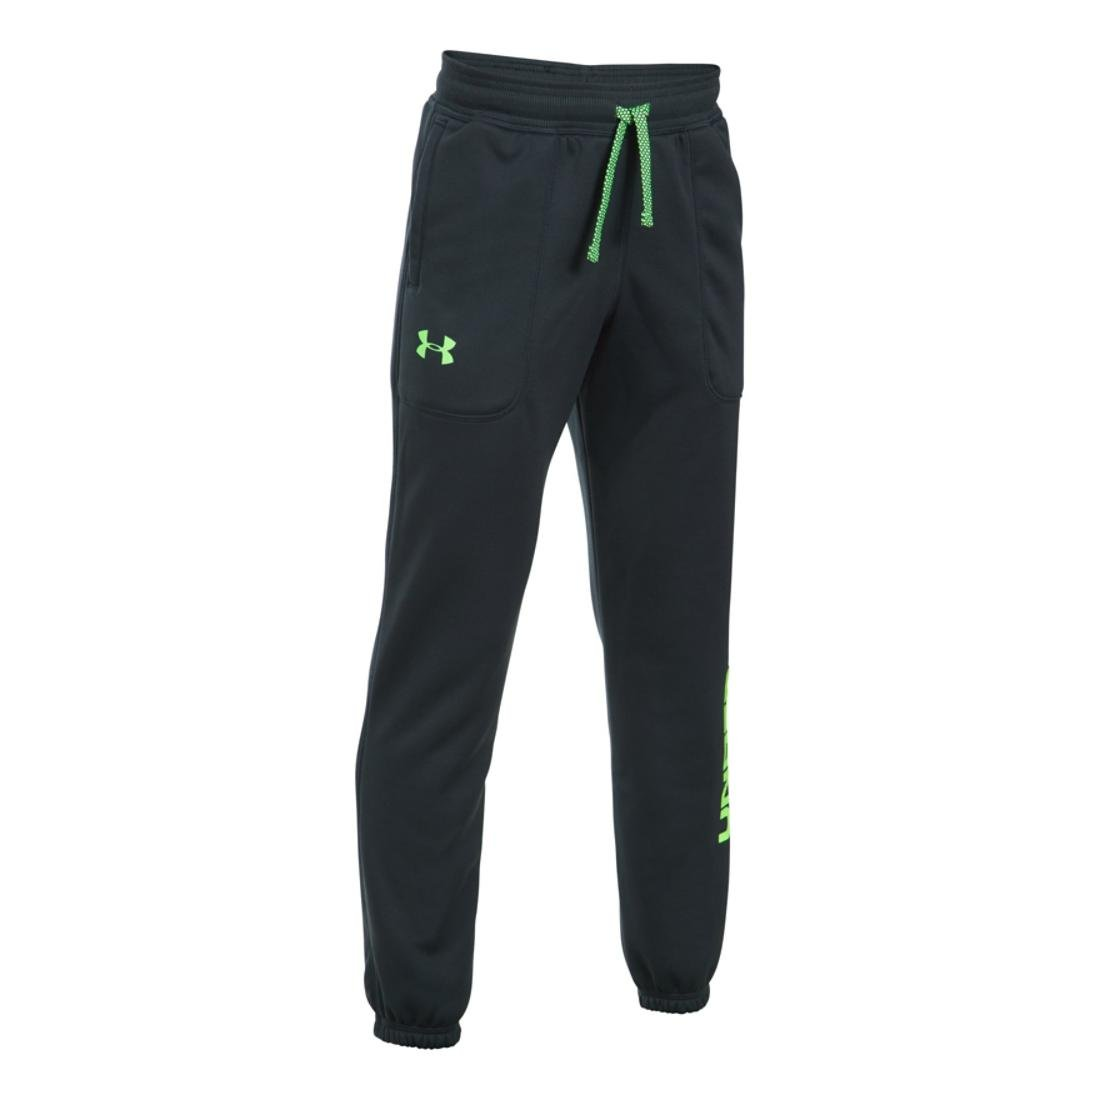 Under Armour Boys Armour Fleece Jogger, Anthracite/Lime, XS (7 Big Kids) x One Size by Under Armour (Image #1)